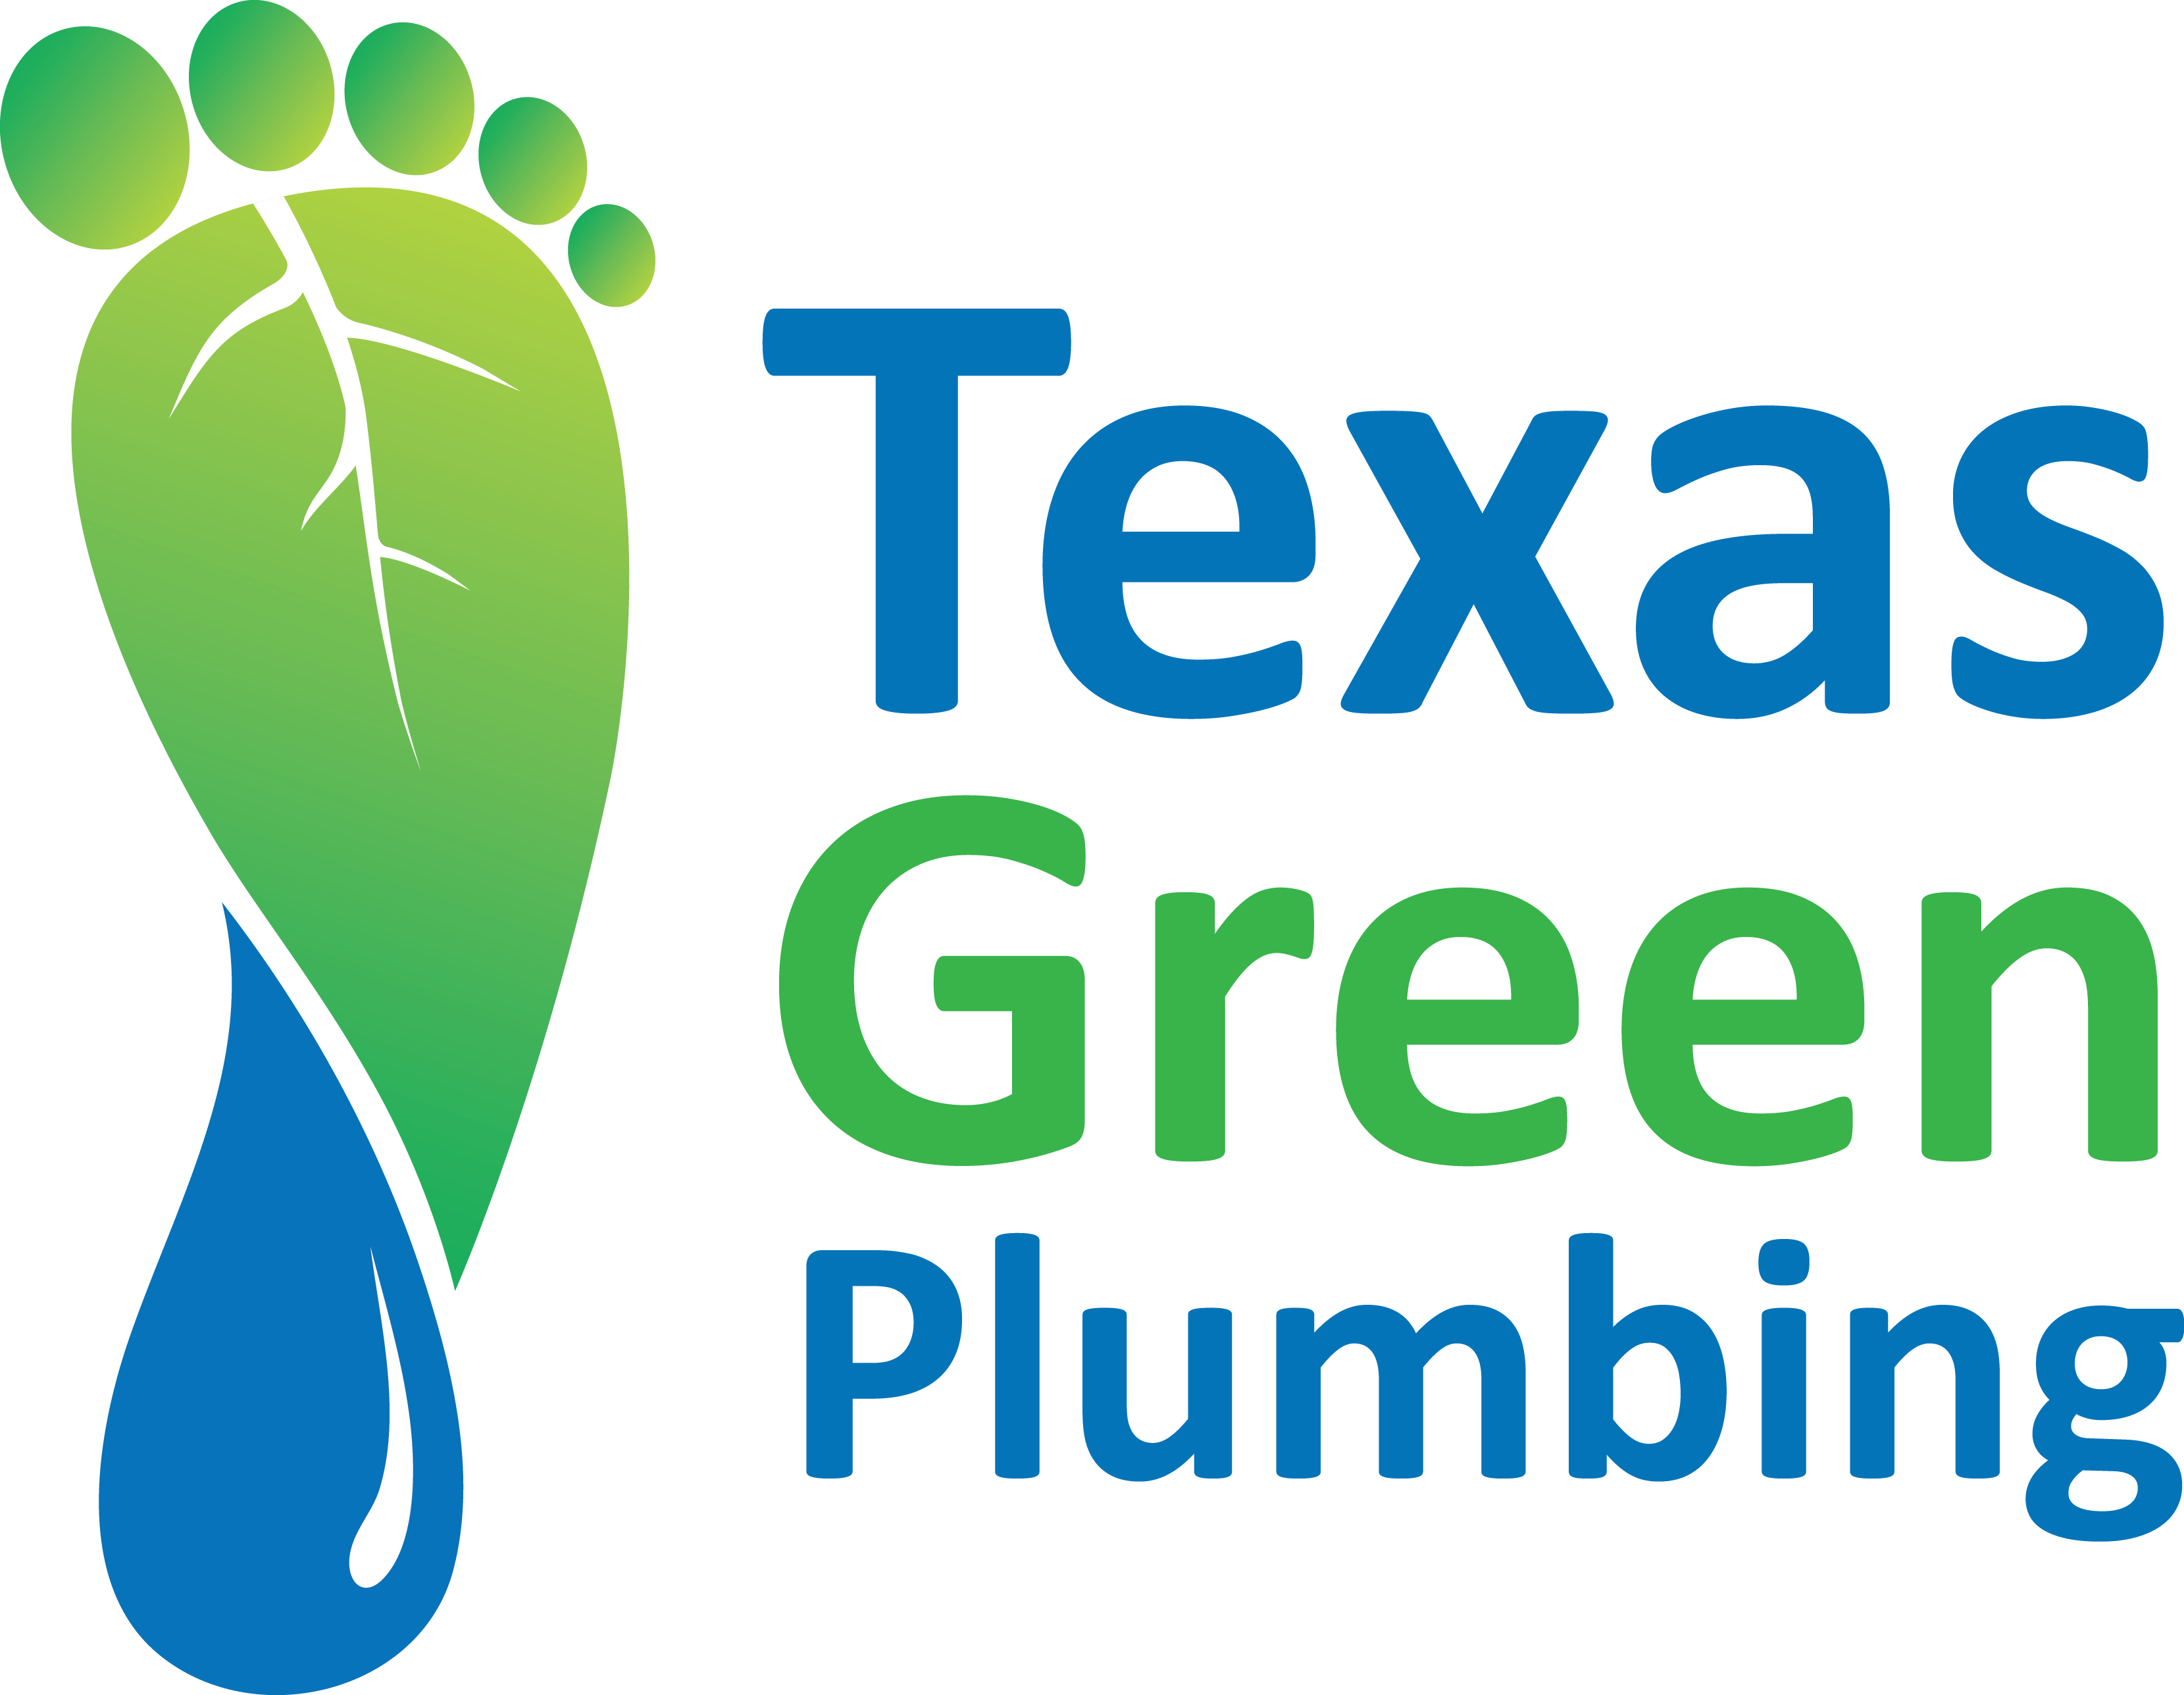 https://wordpressstorageaccount.blob.core.windows.net/wp-media/wp-content/uploads/sites/560/2019/01/texas-green-plumbing-logo_final_stacked.png